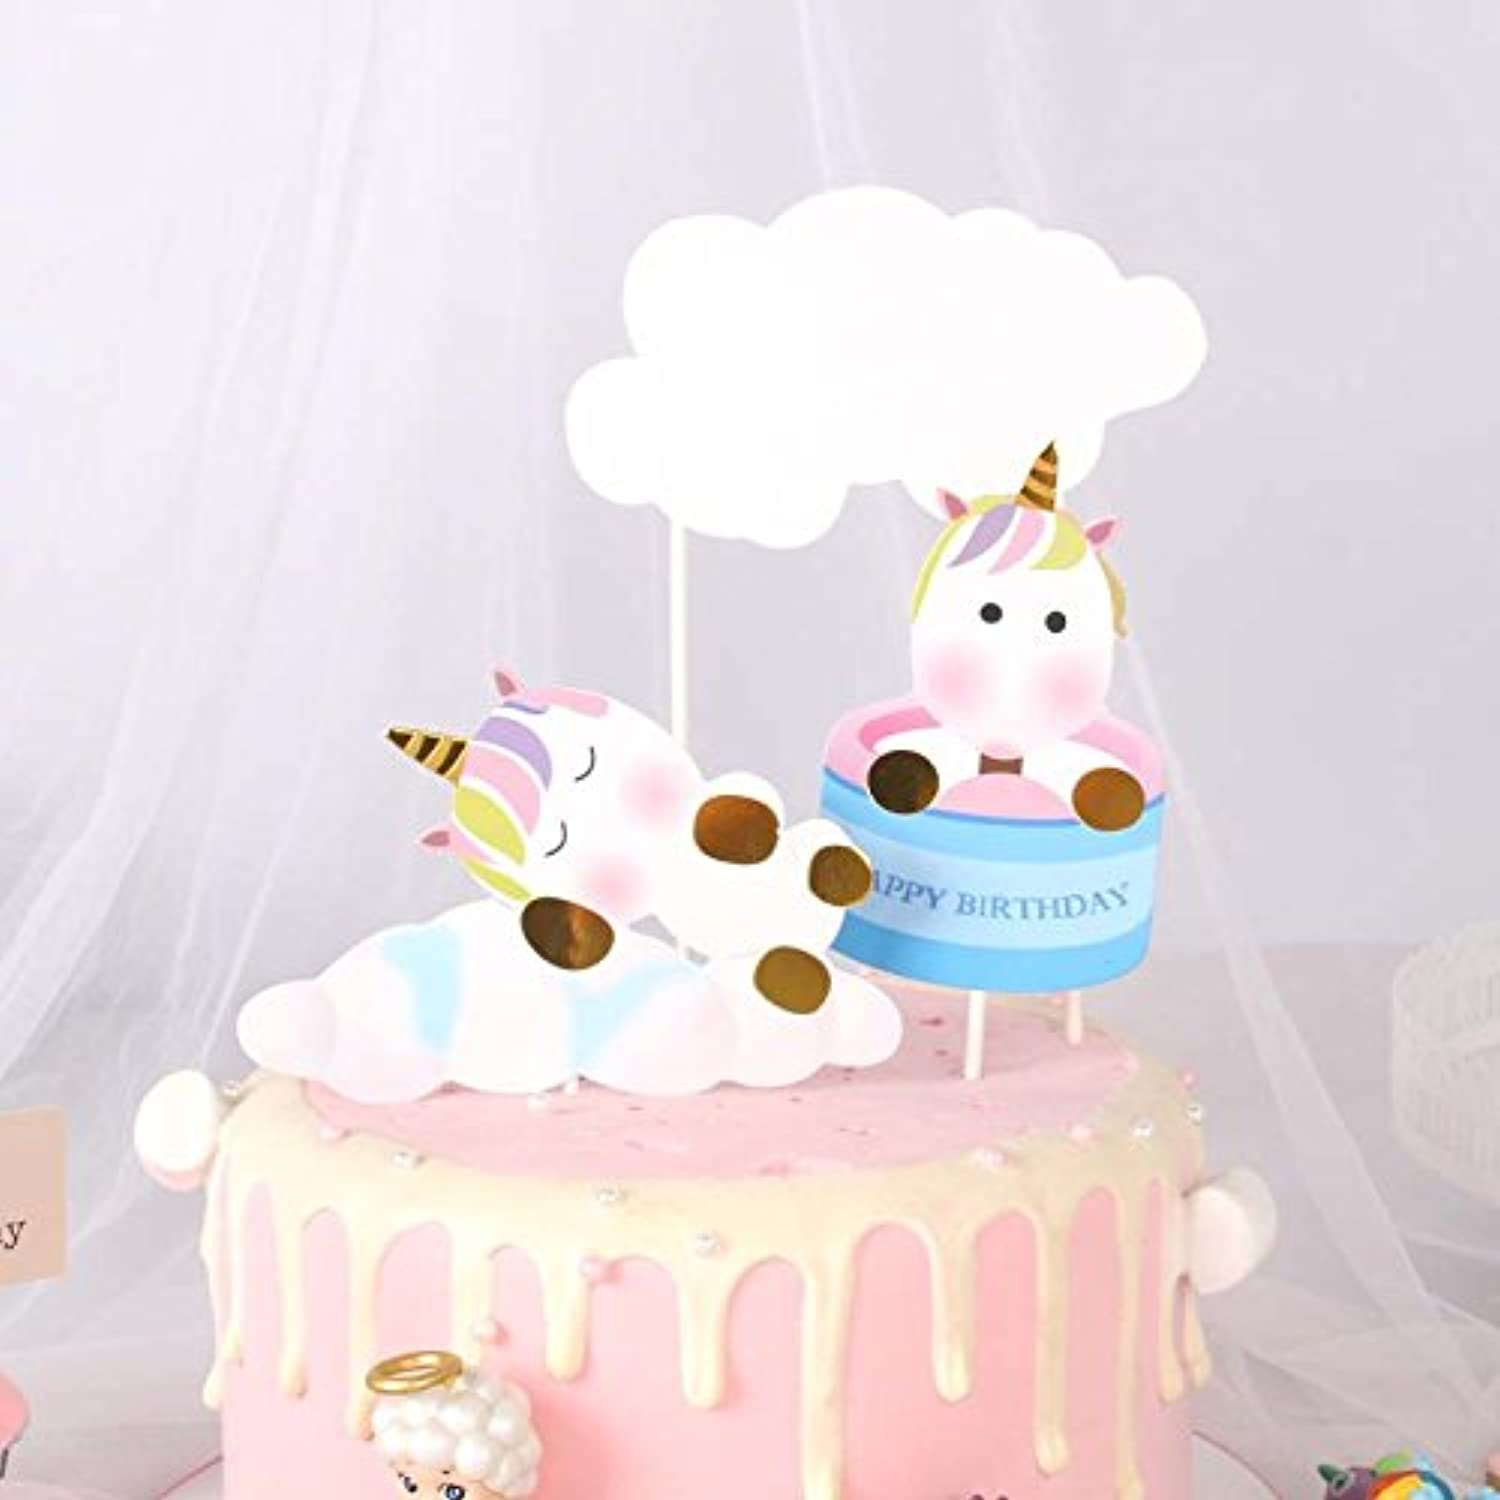 PureArte Cute Unicorns and Clouds Happy Birthday Cake Topper for Kids Party Favors Decoration (bluee)